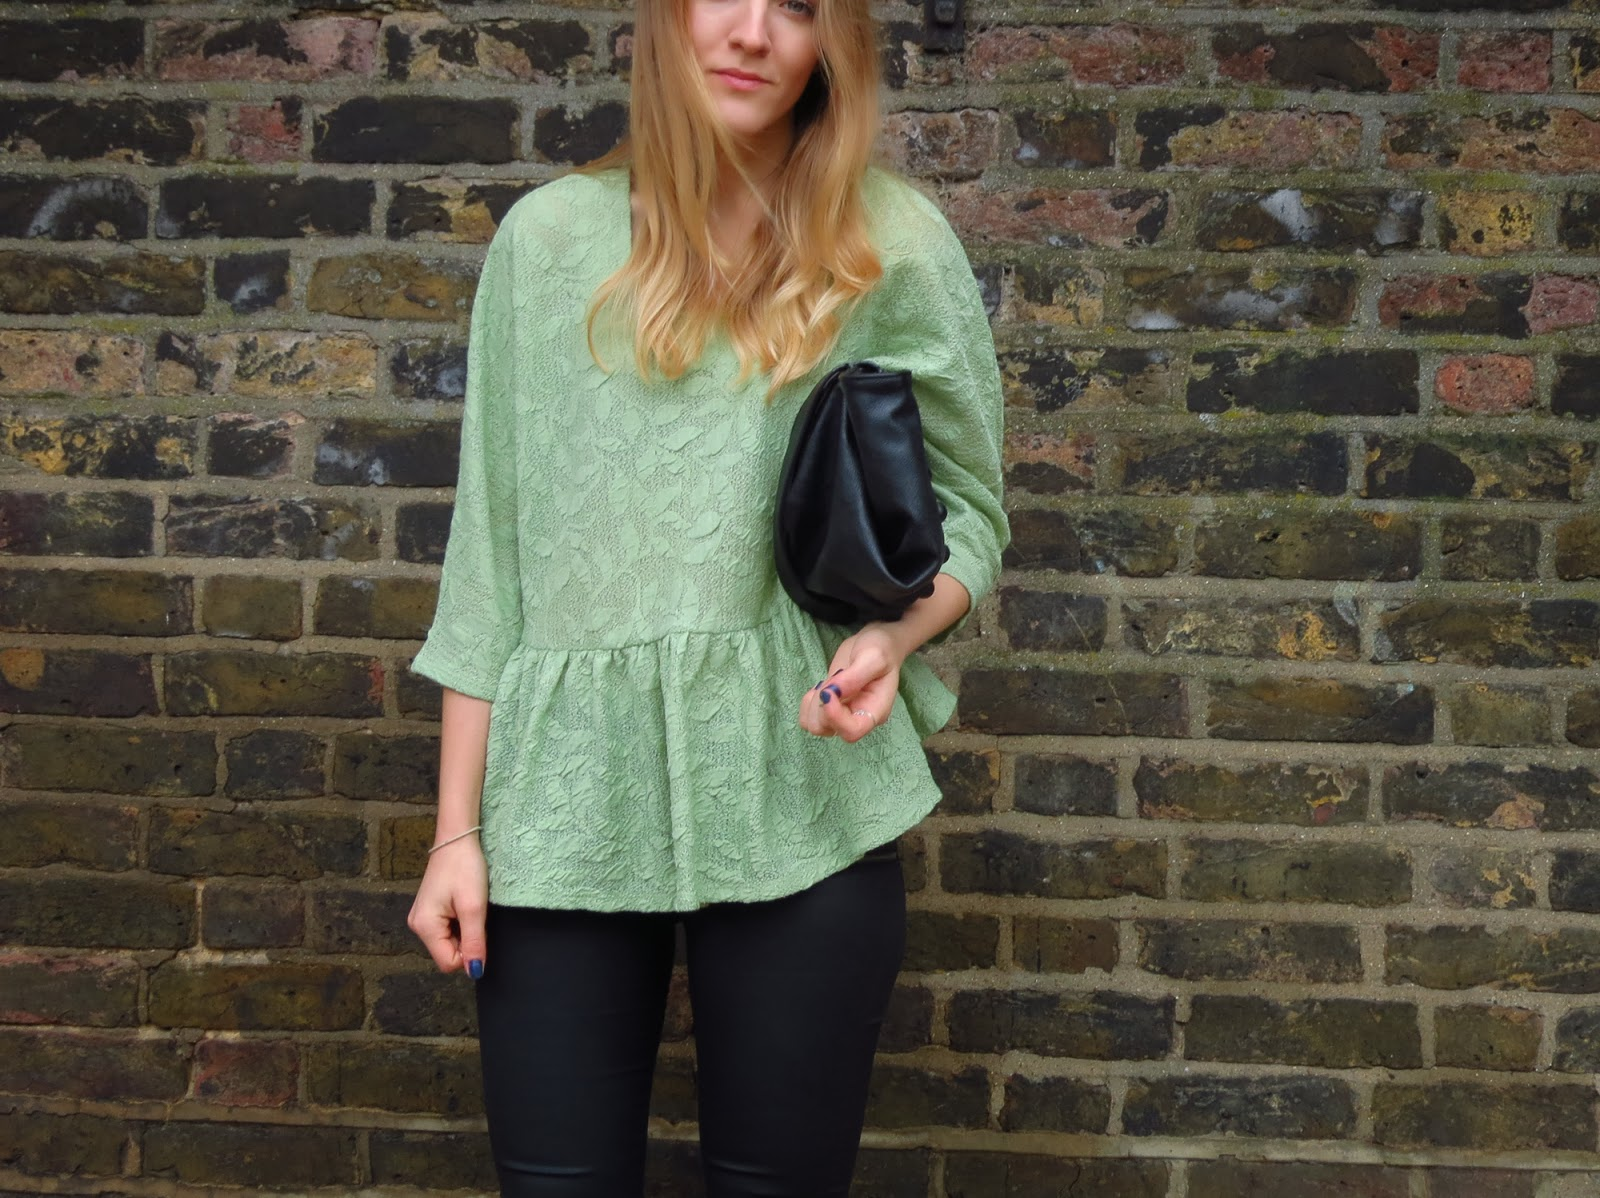 oversized green top with peplum waist